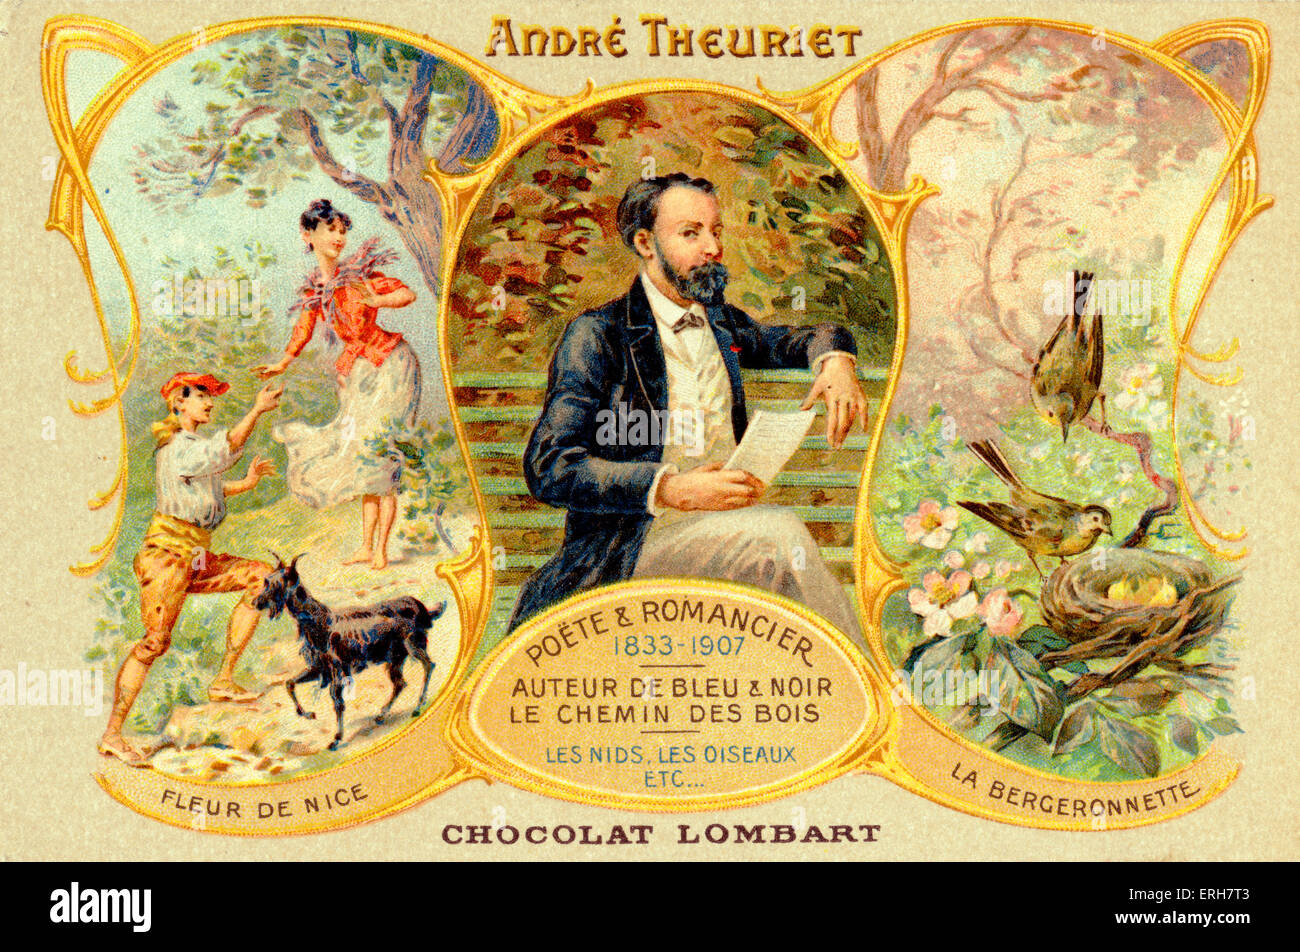 André Theuriet - portrait on Chocolat Lomart advertising card. French poet and novelist, 1833-1907. With images - Stock Image